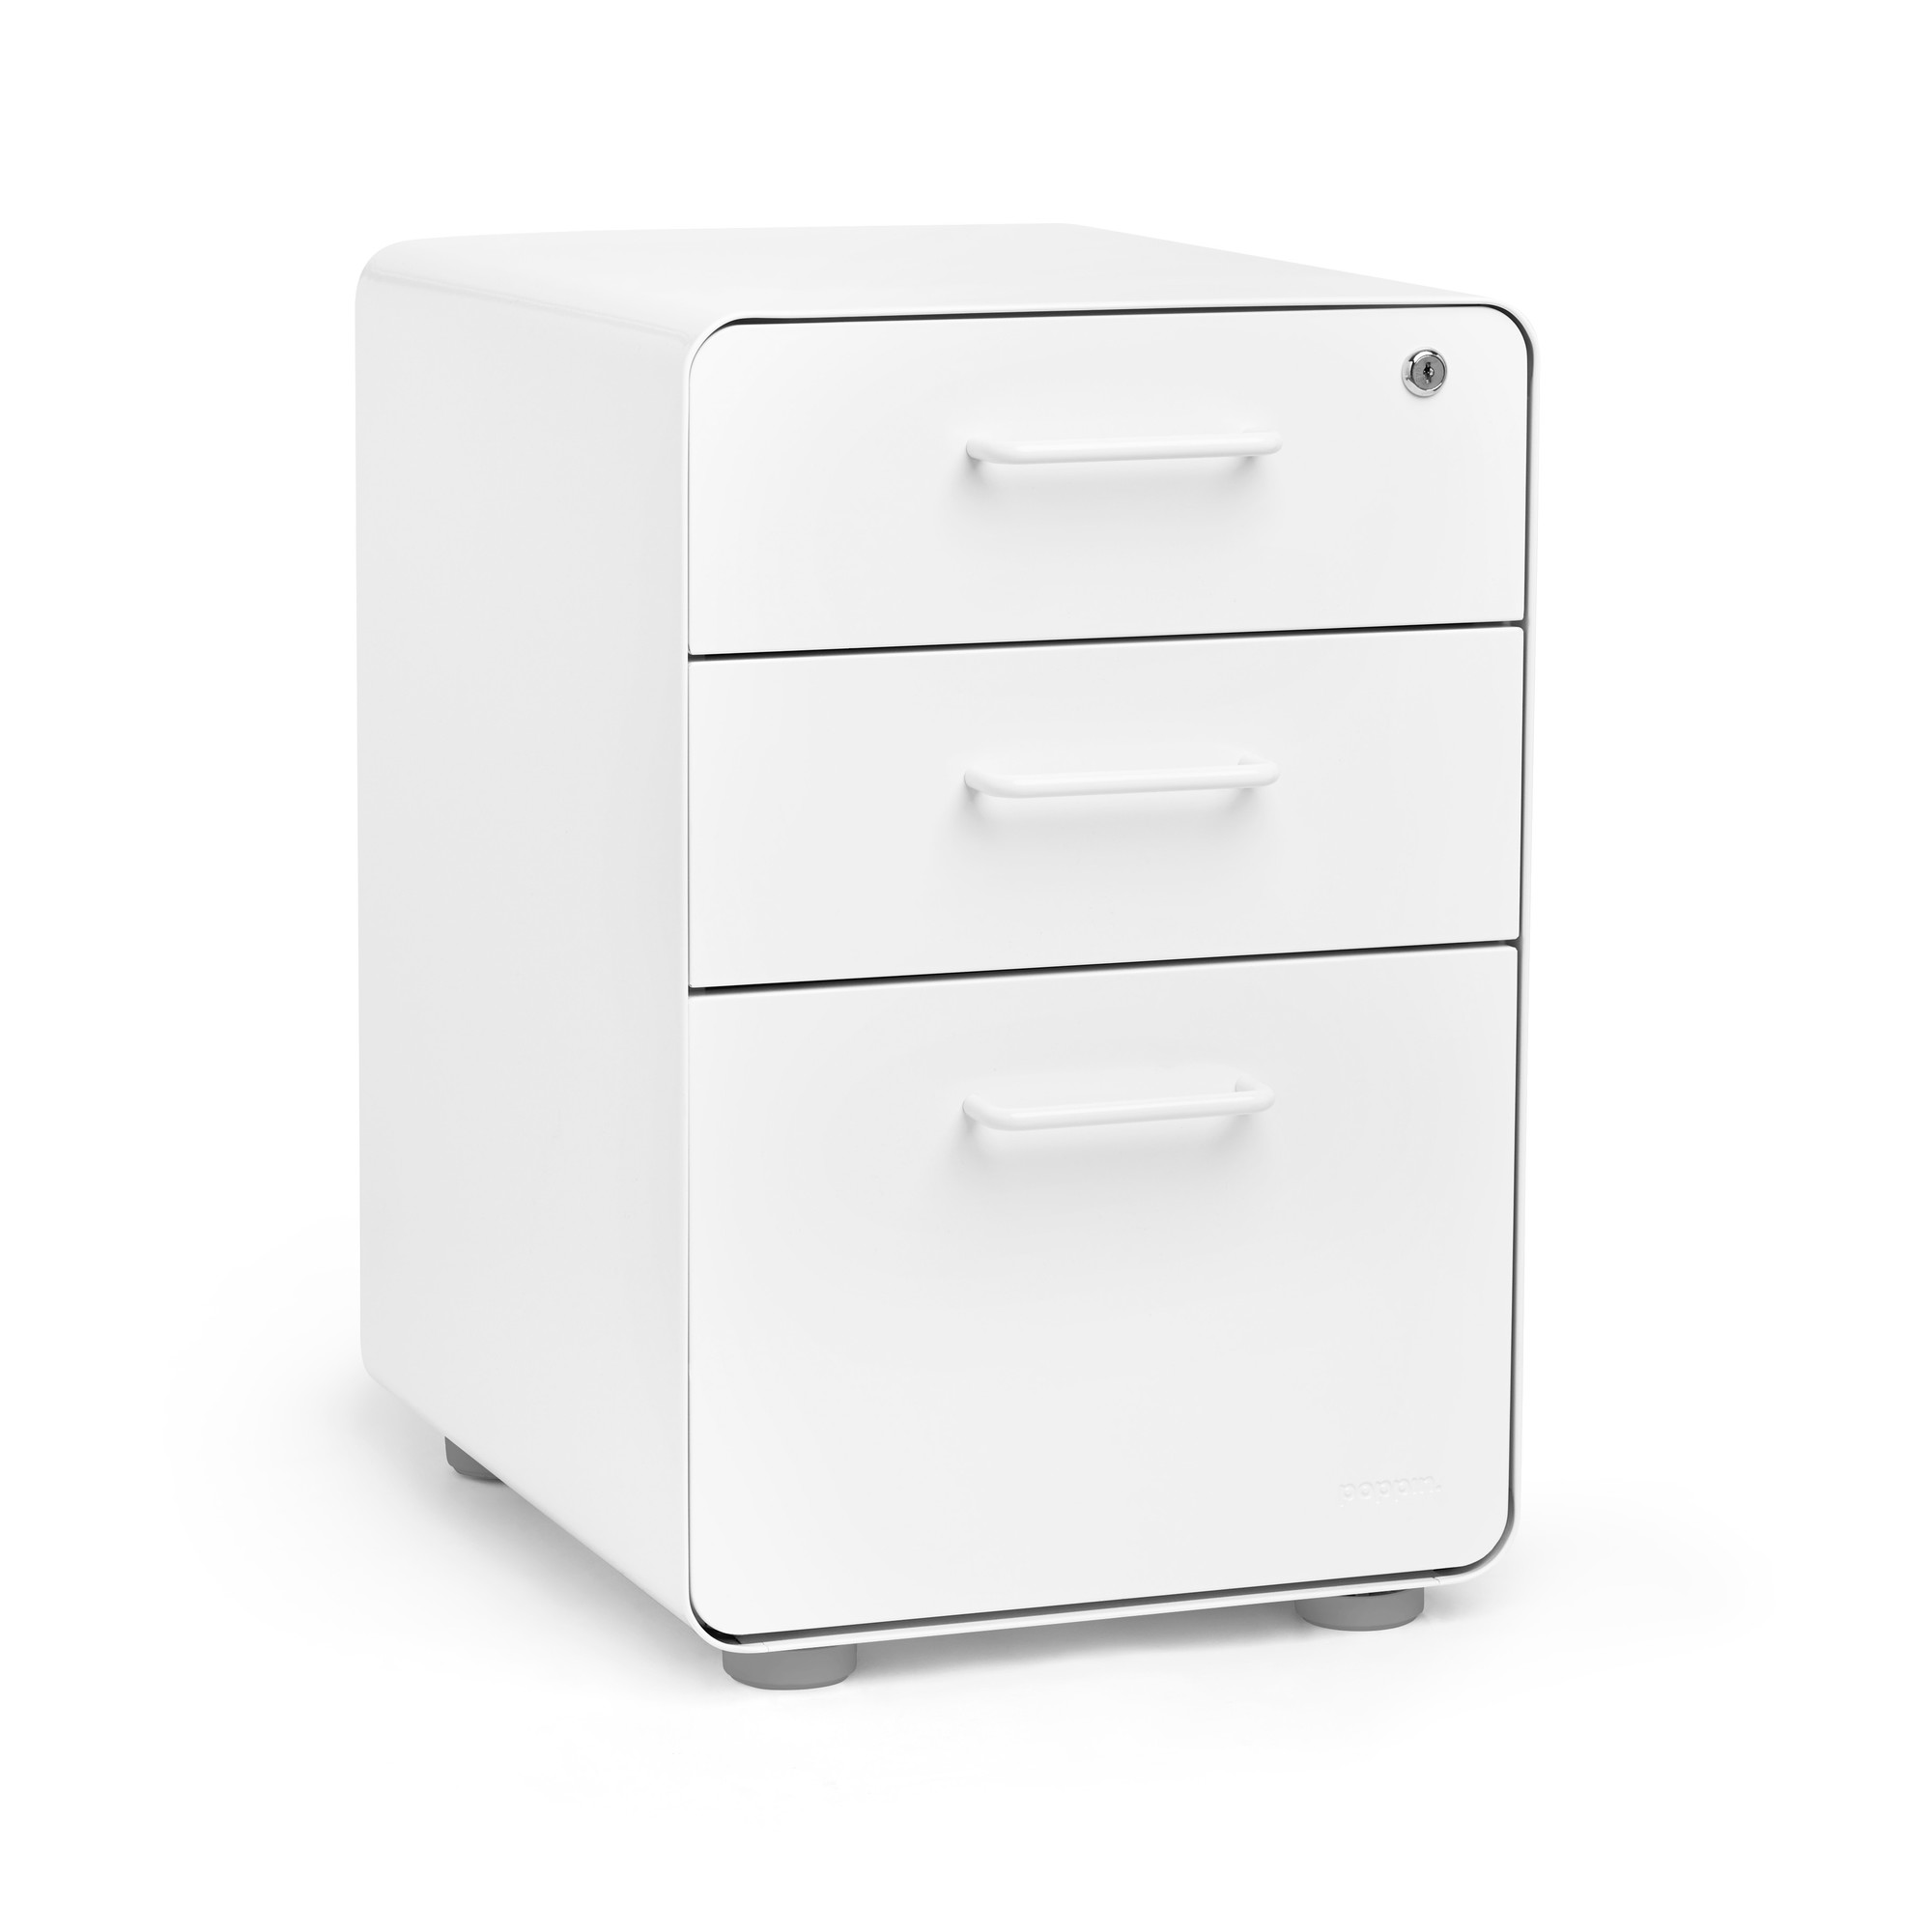 Delicieux Images. White Stow 3 Drawer File Cabinet ...